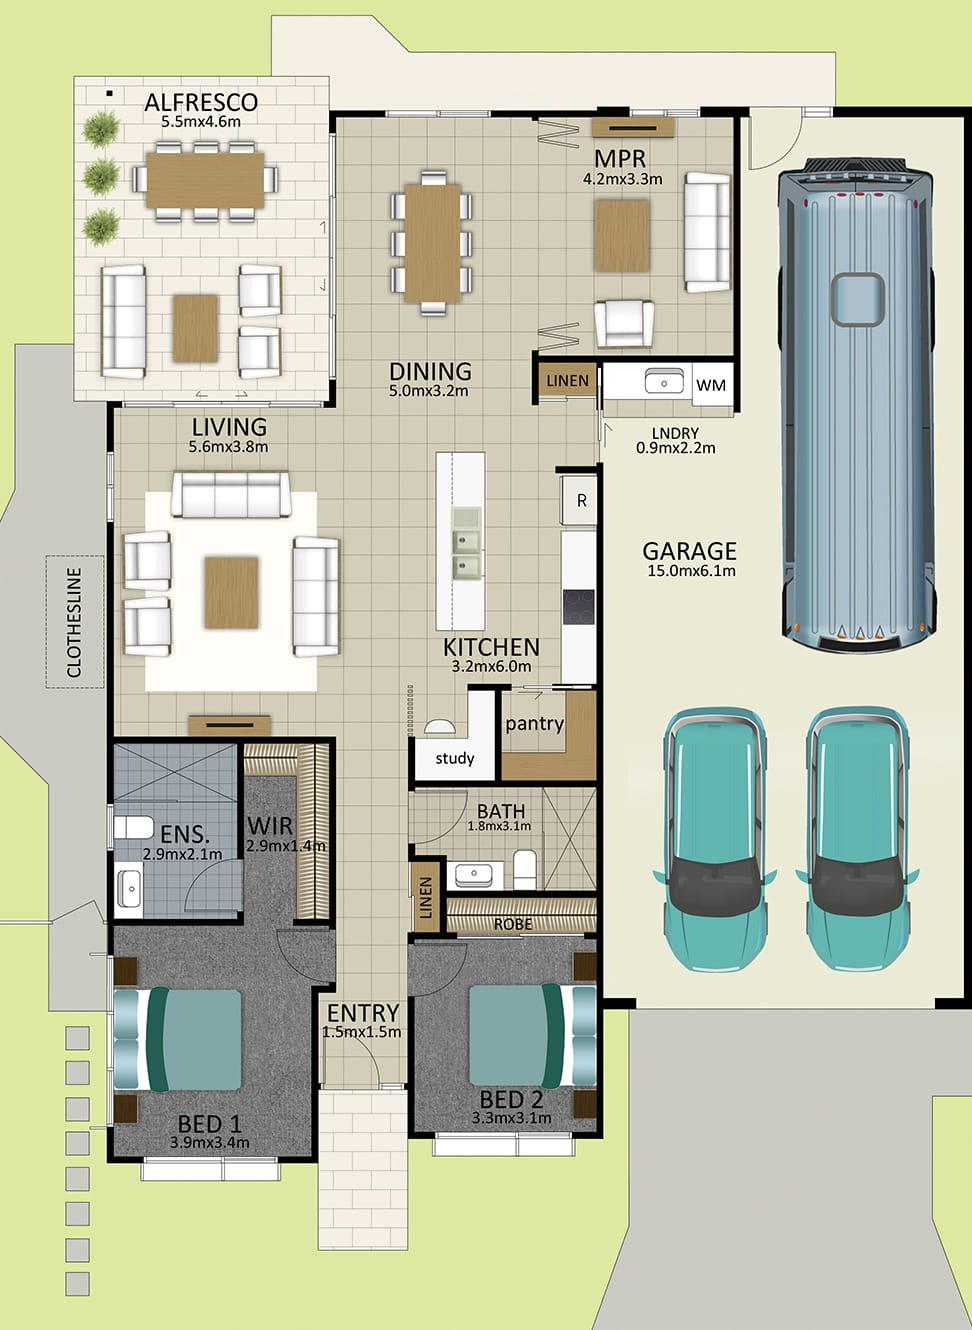 HR LAT25 Floorplan LOT 115 Pepper OCT19 V2 - Lot 115